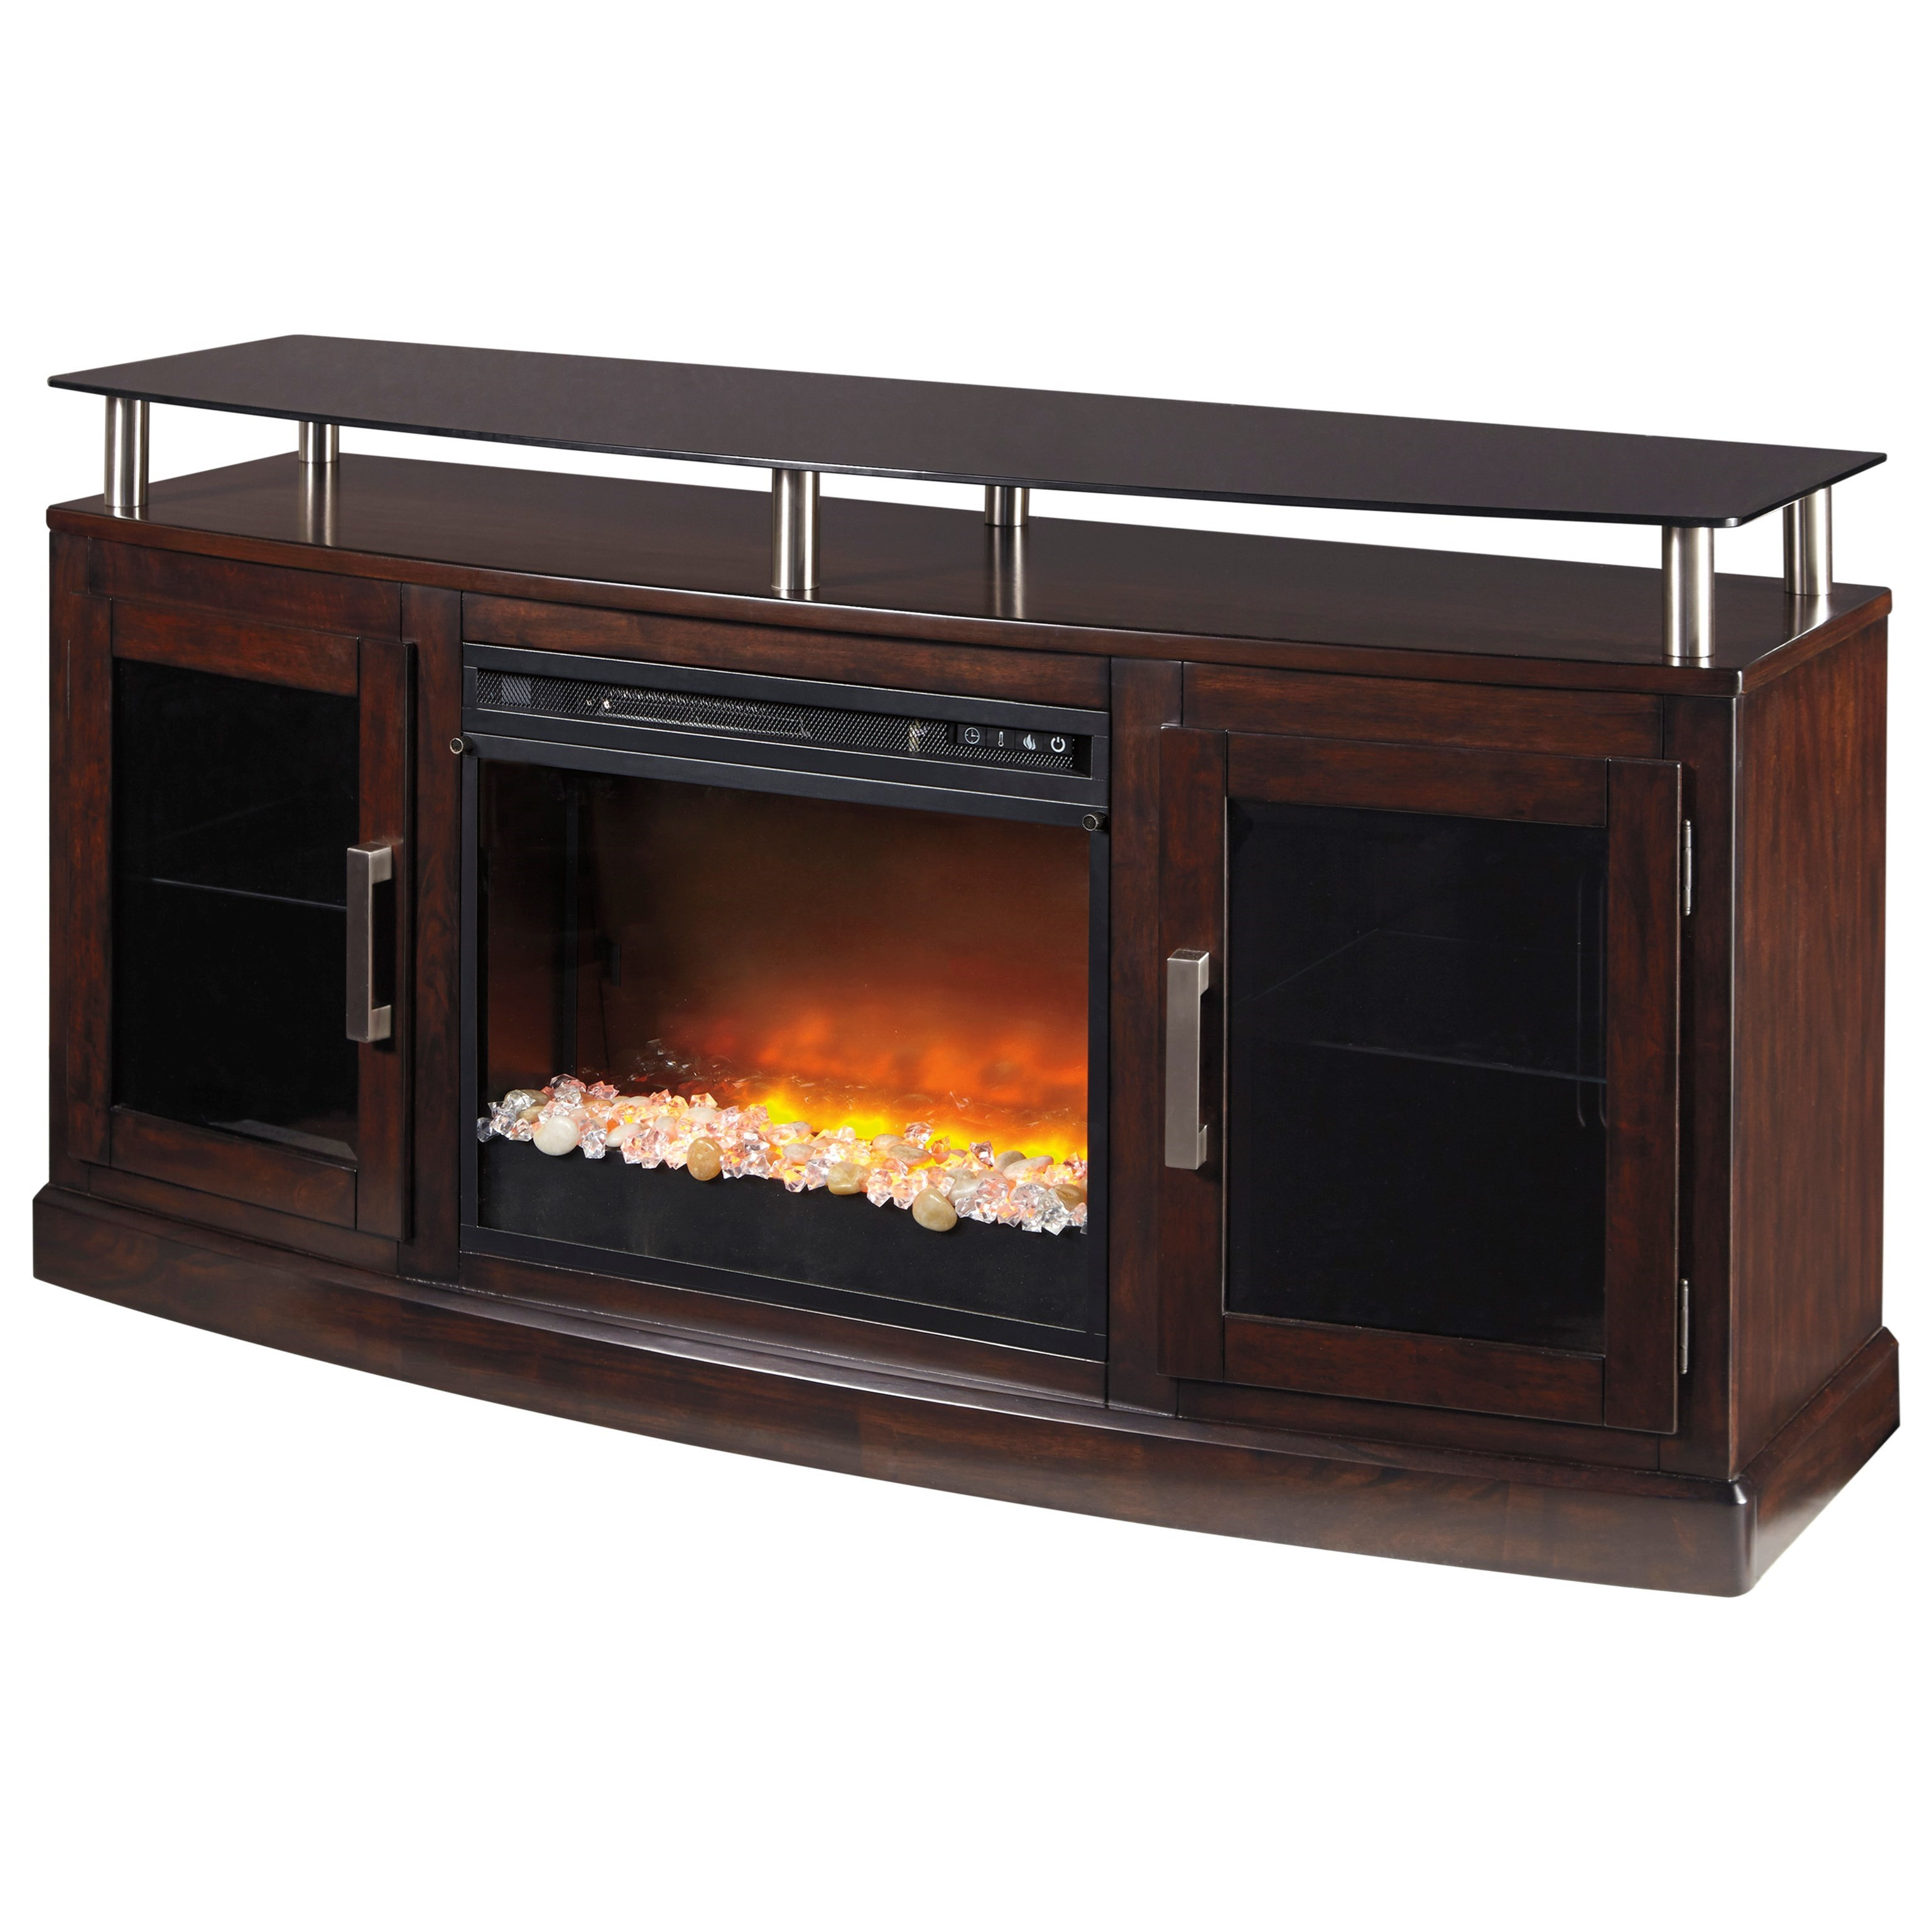 Chanceen Medium TV Stand with Fireplace Insert by Signature Design by Ashley at Nassau Furniture and Mattress